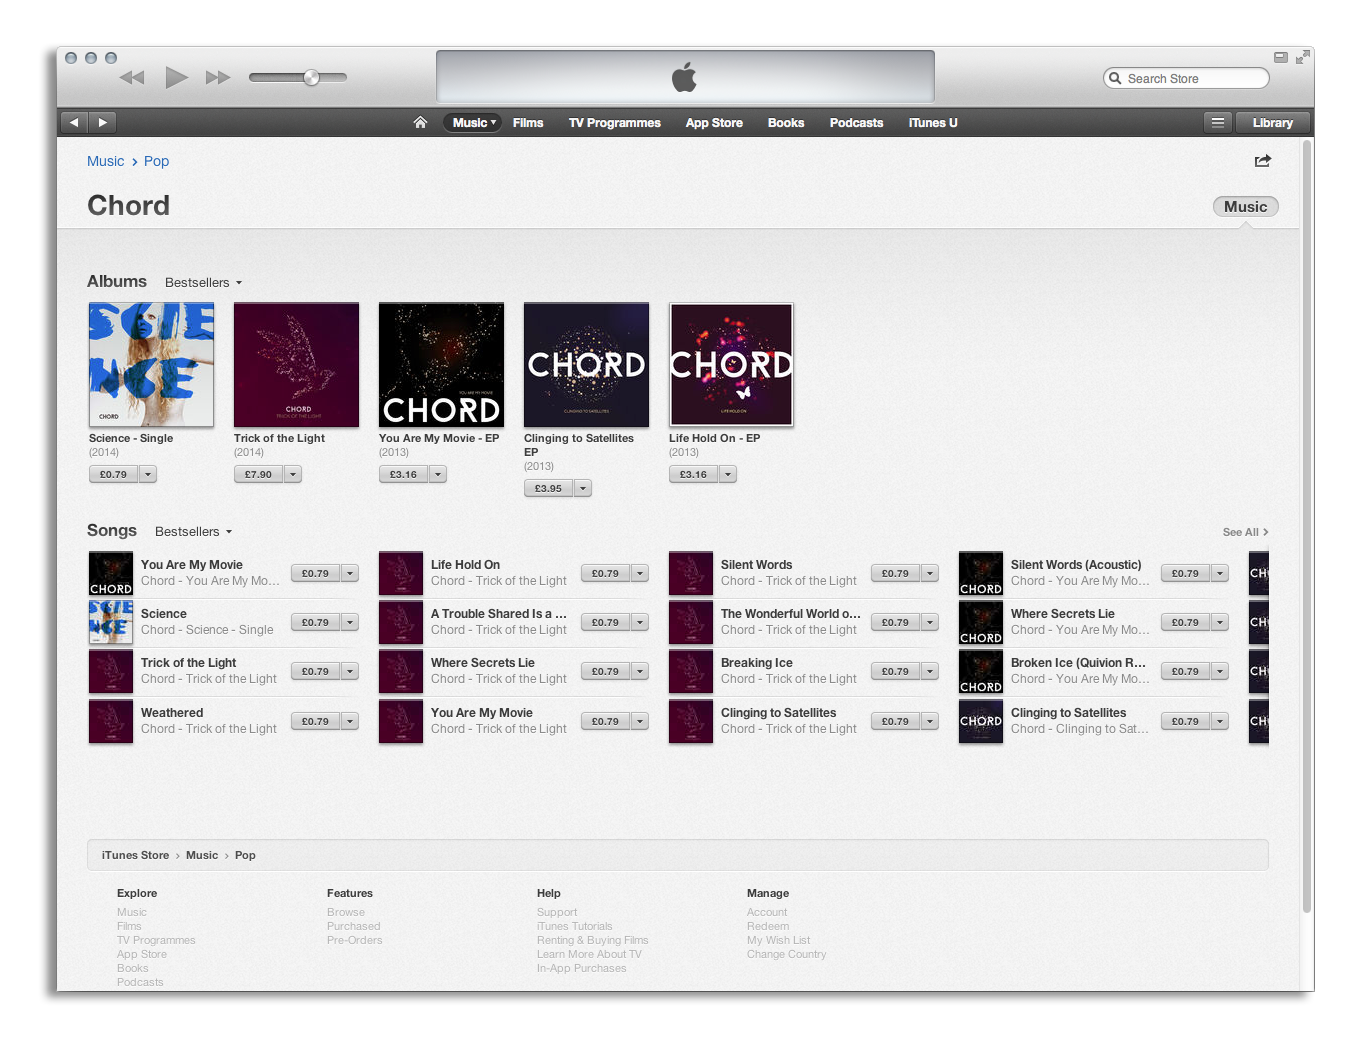 Chord Discography on iTunes